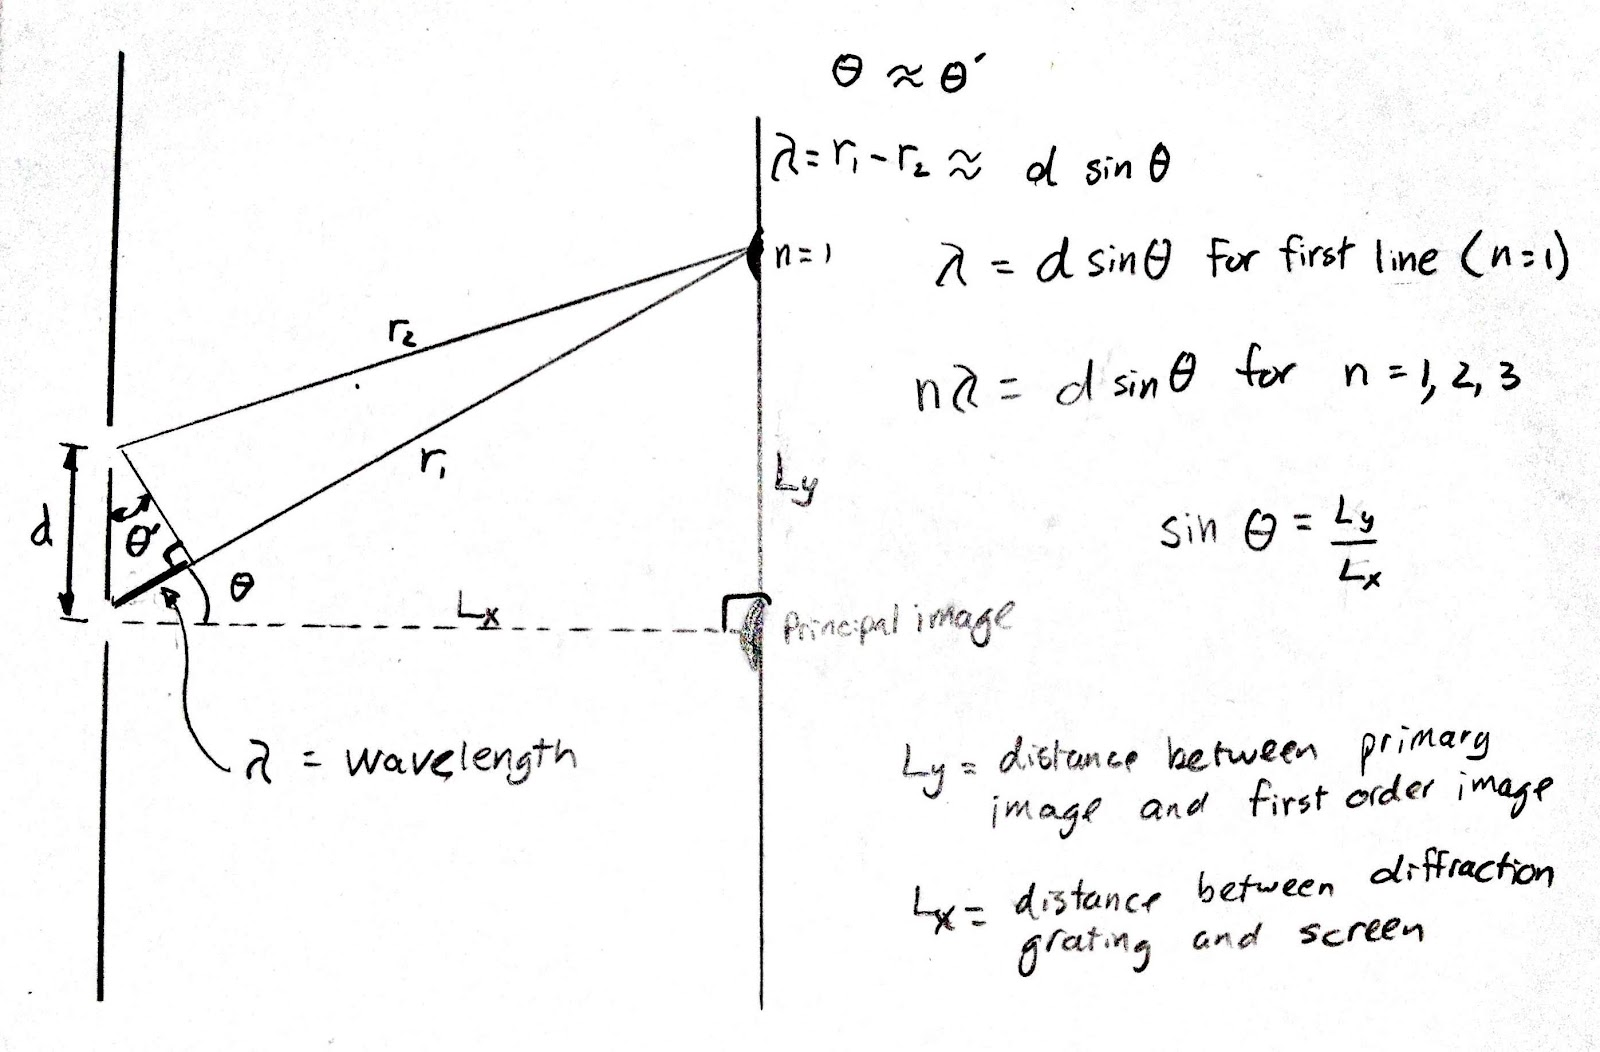 Equation For Light Wavelength